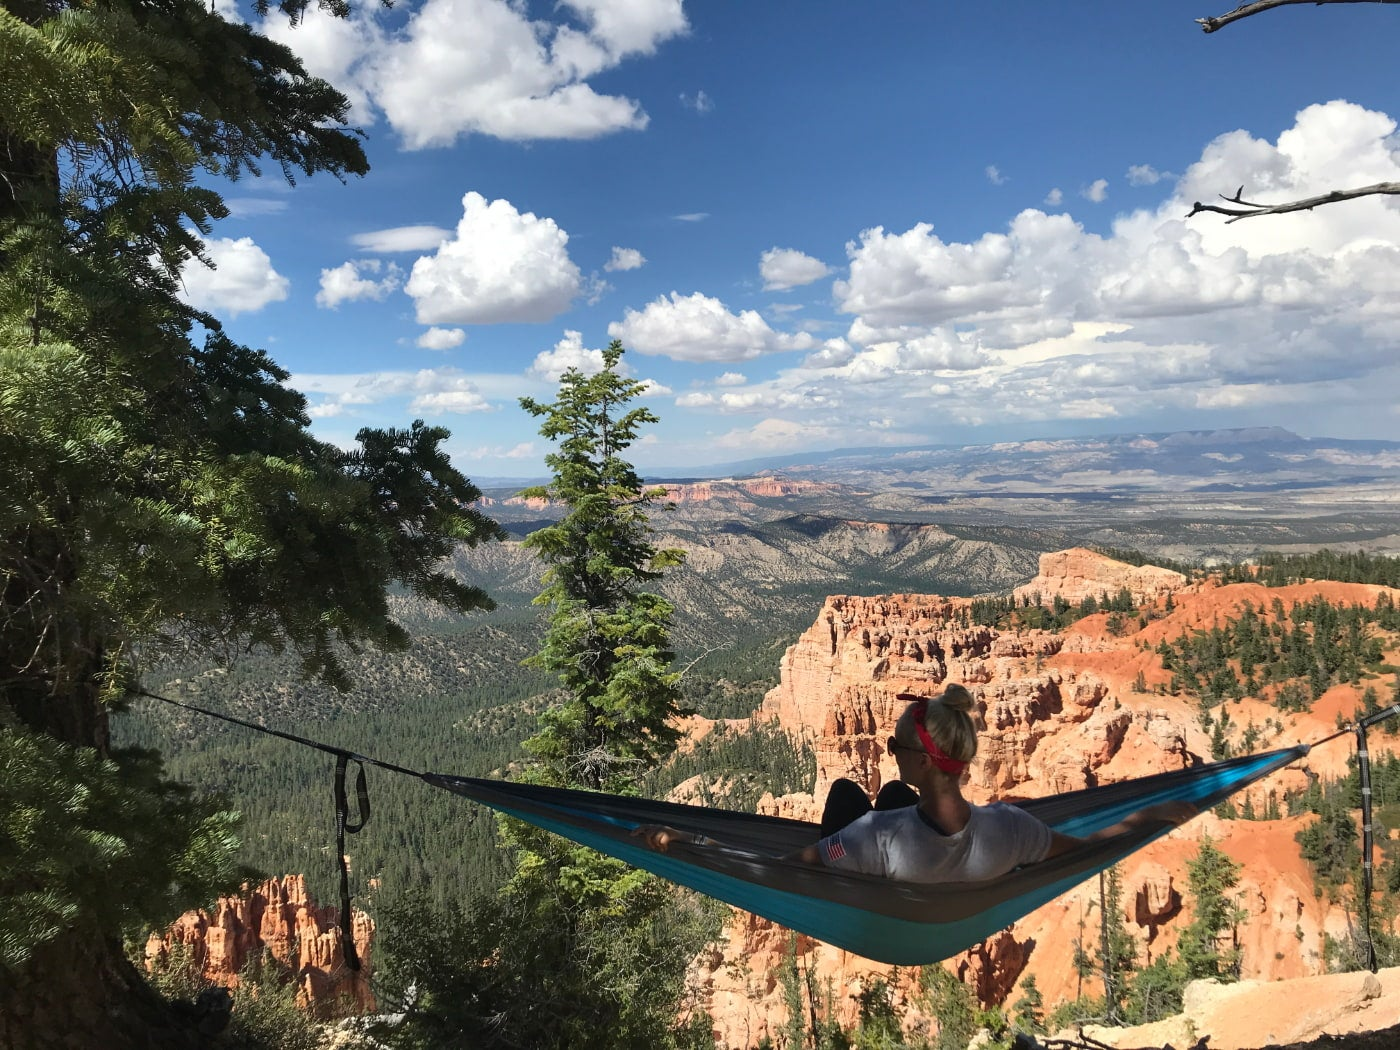 Women with grey shirt and blond hair in a bun sits in a blue hammock facing a panoramic overlook of the Bryce Canyon from above